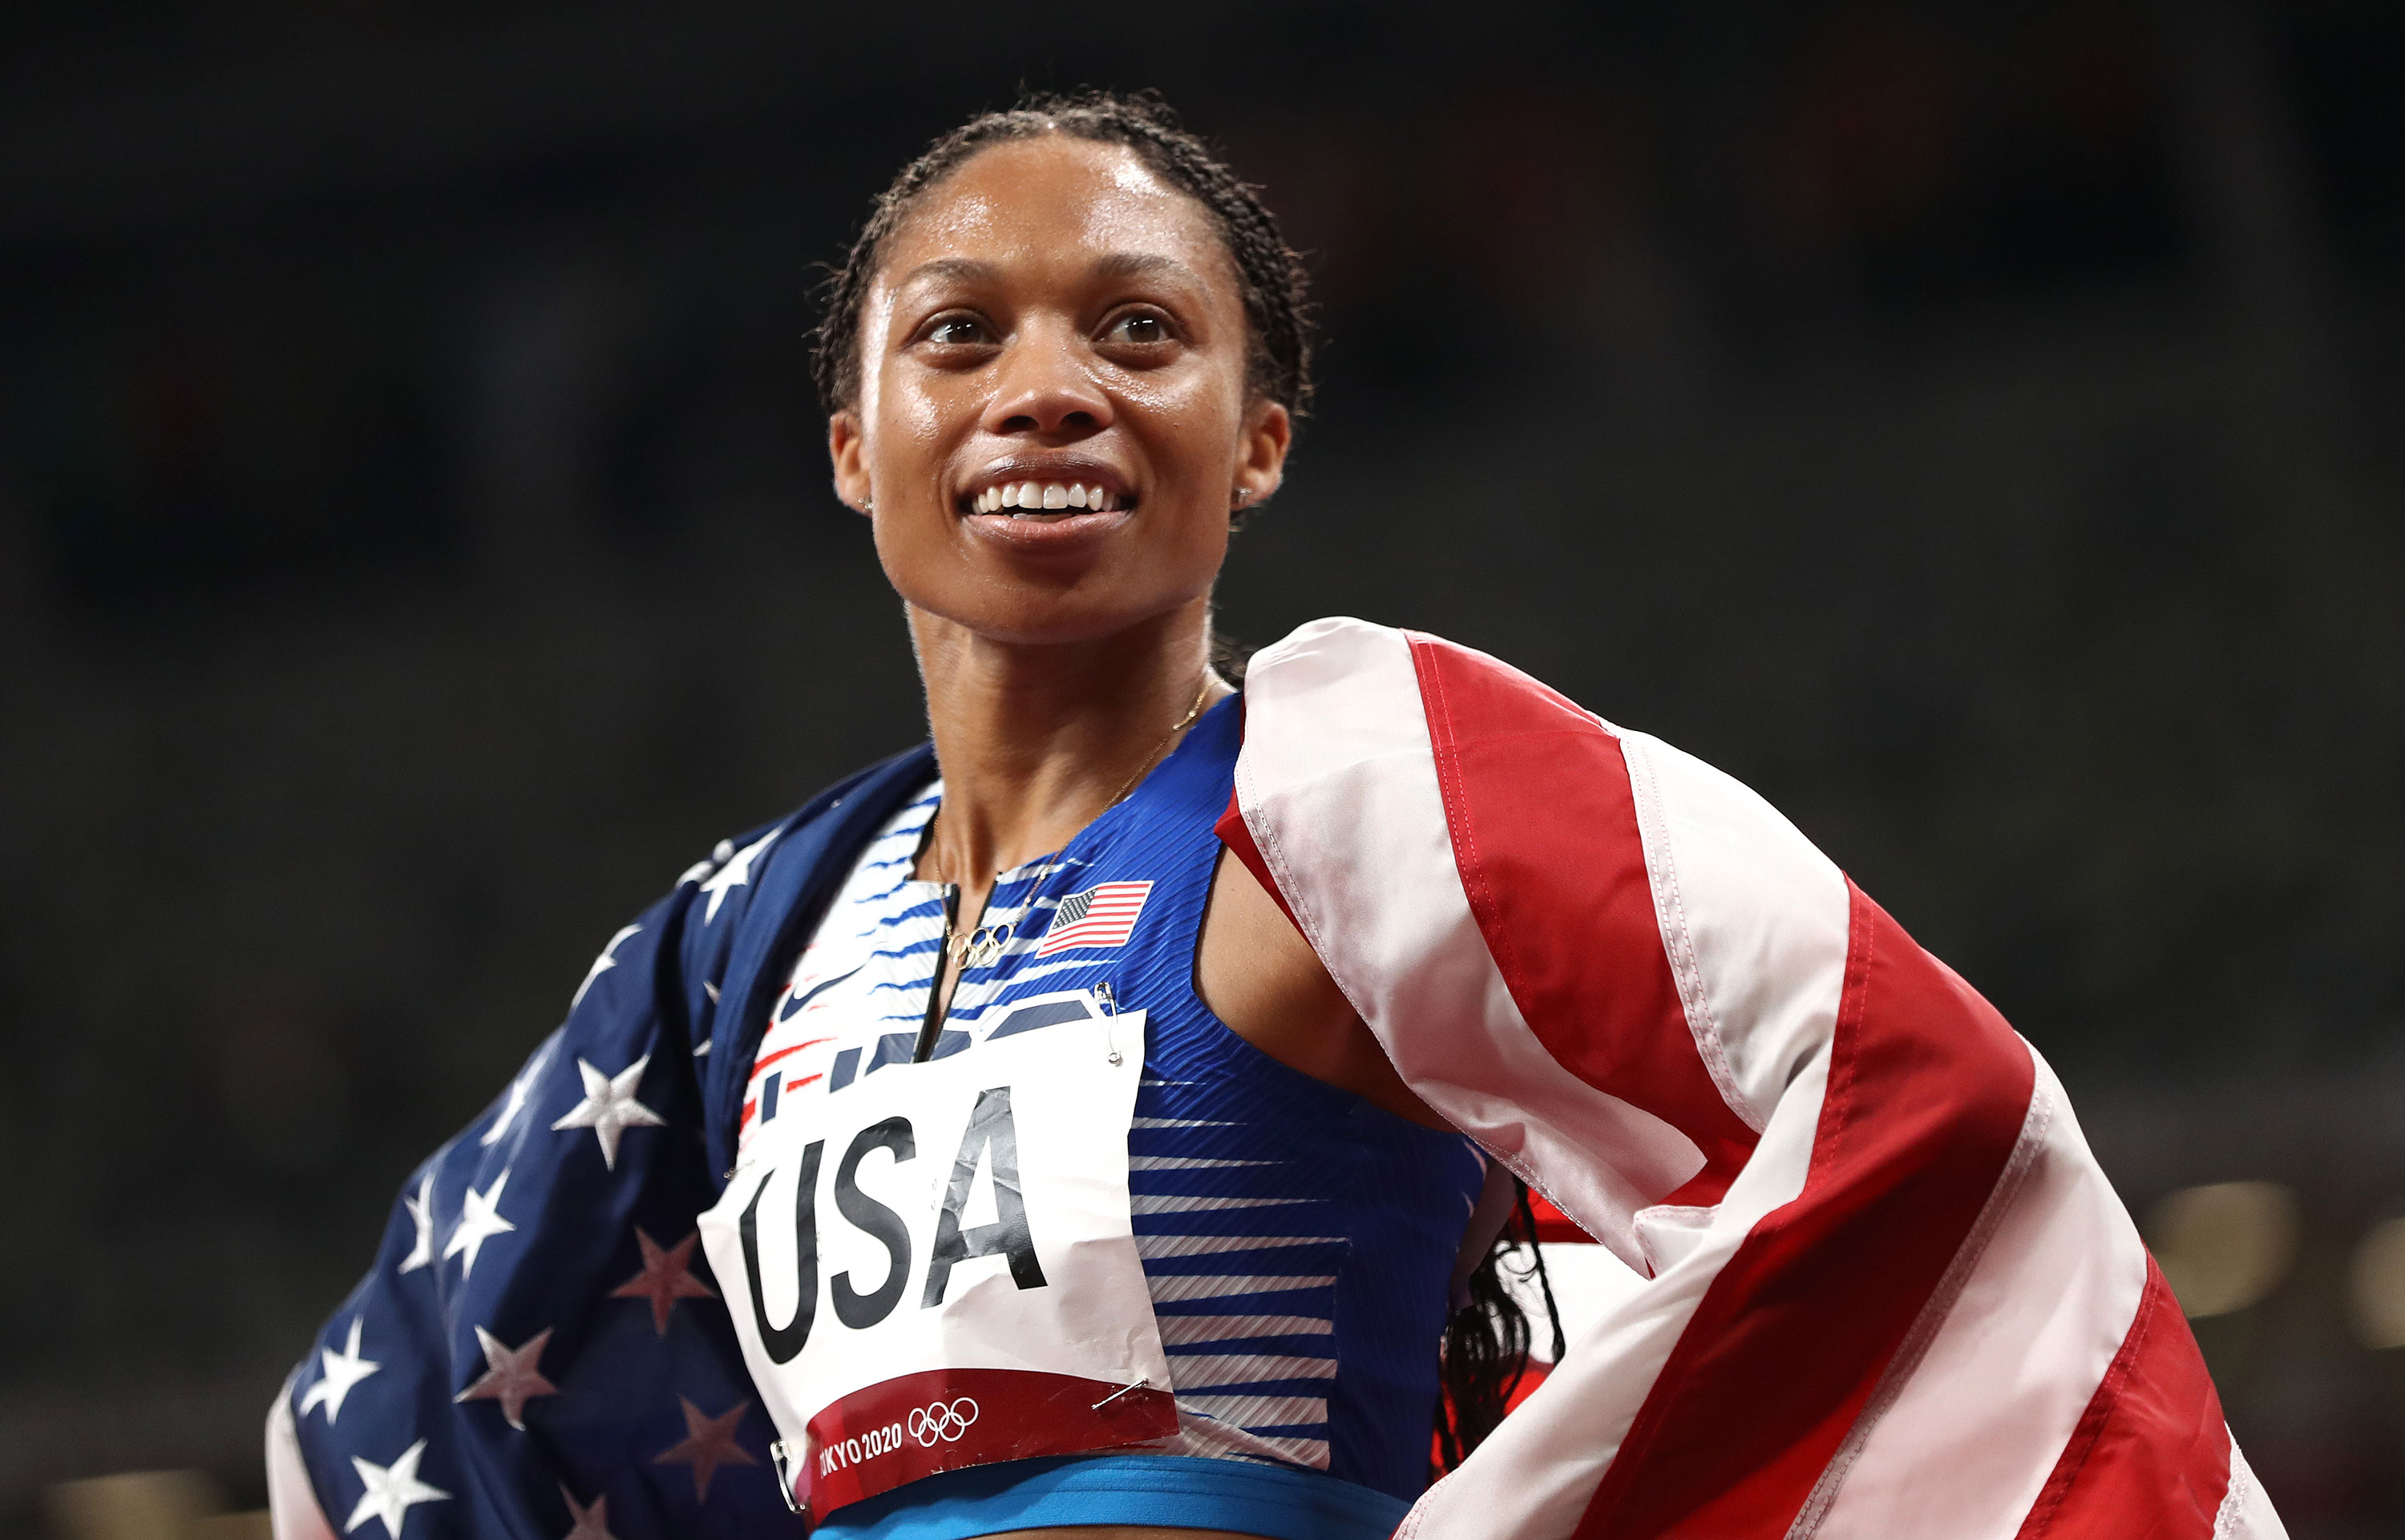 American Allyson Felix reacts after winning gold in the 4x400 meter relay final on Saturday.